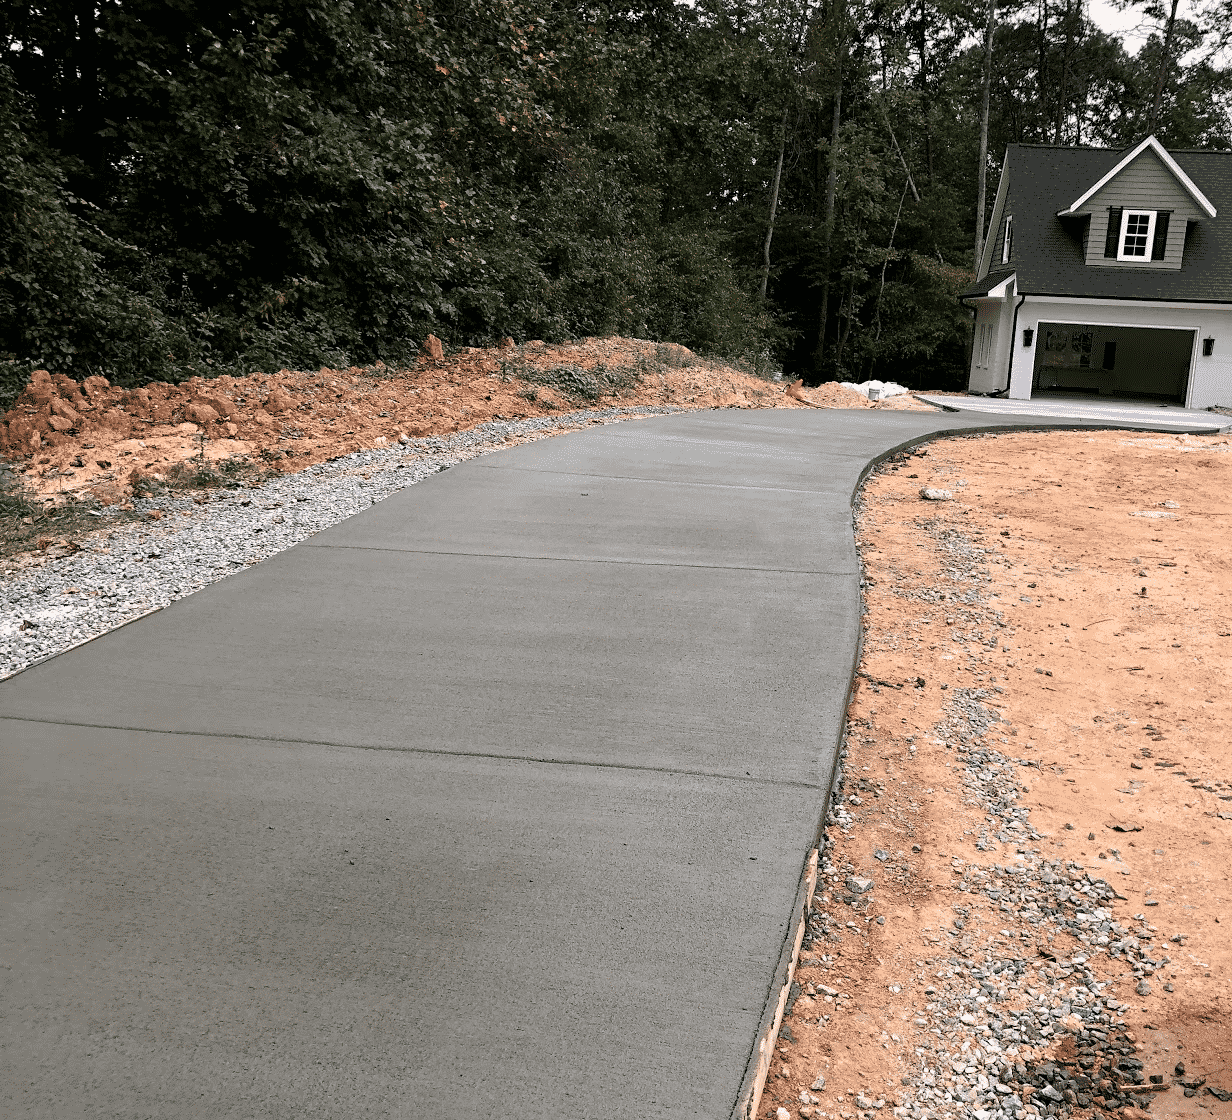 Concrete Driveway and grey house